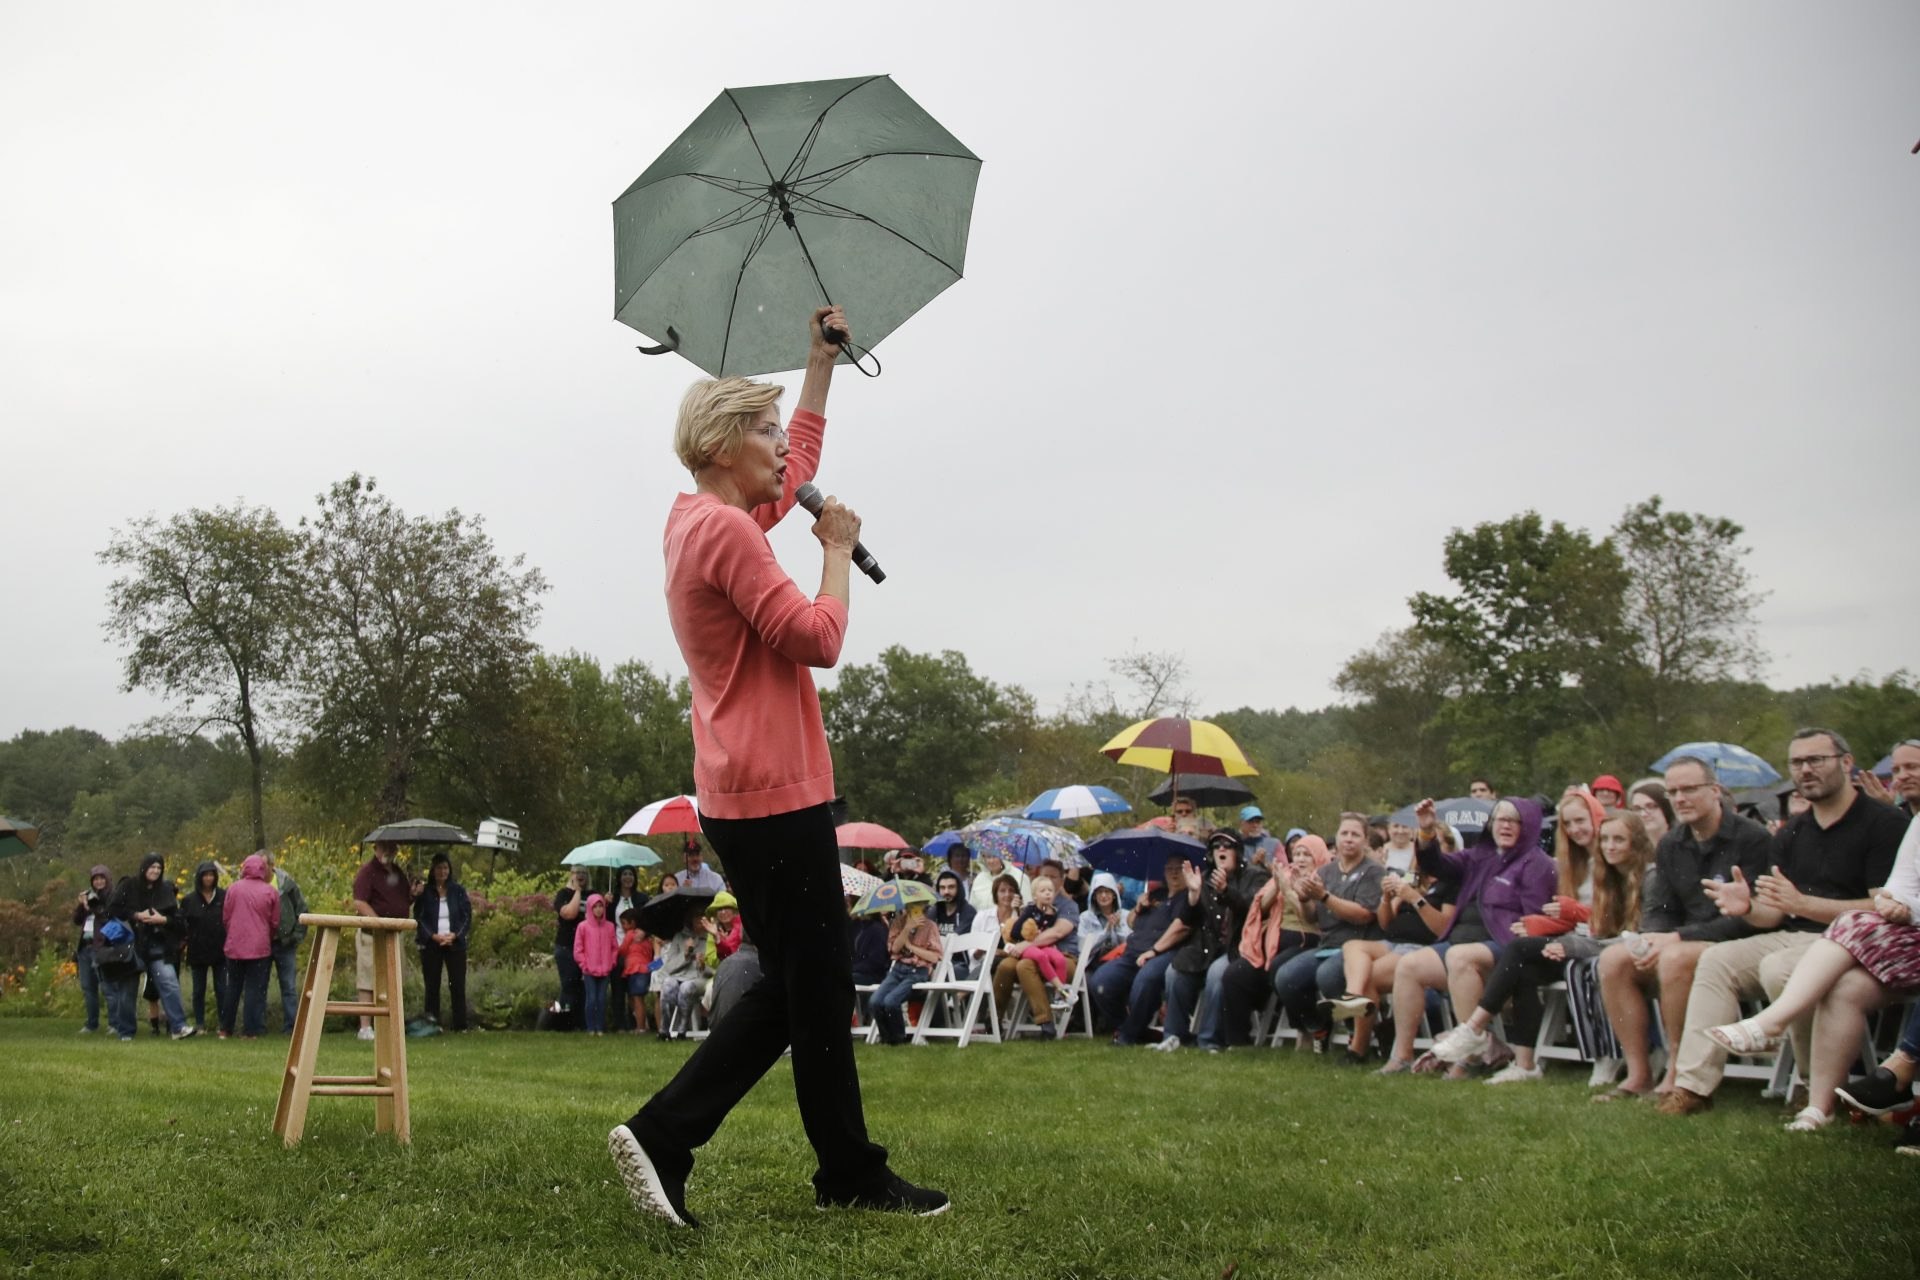 Democratic presidential candidate Sen. Elizabeth Warren, D-Mass., gestures with an umbrella as she speaks at a campaign event, Monday, Sept. 2, 2019, in Hampton Falls, N.H.